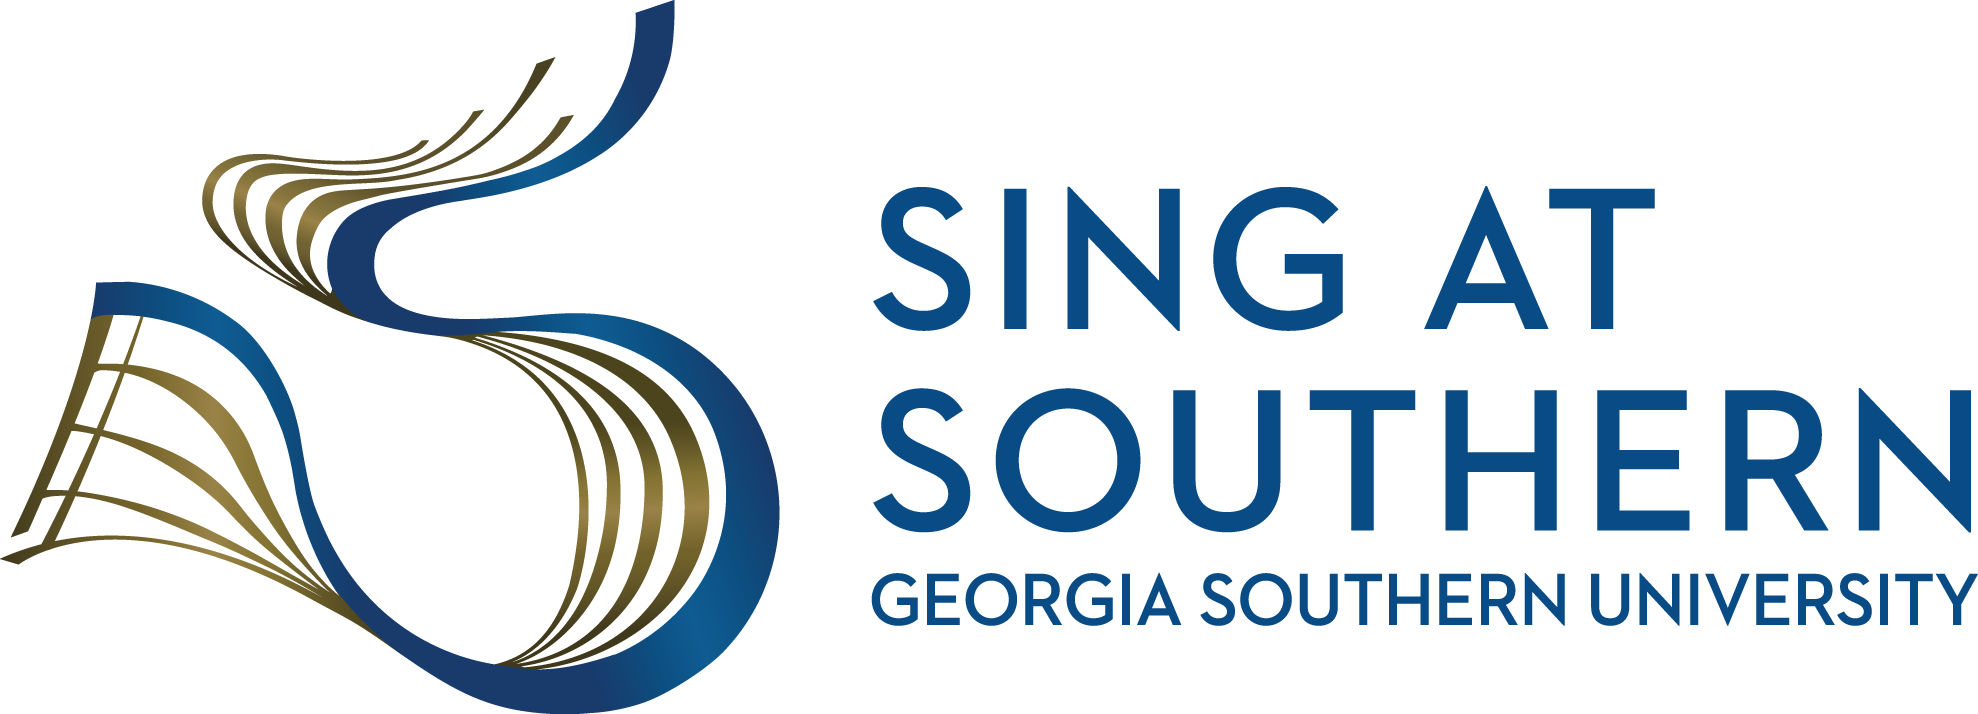 sing at southern georgia southern university